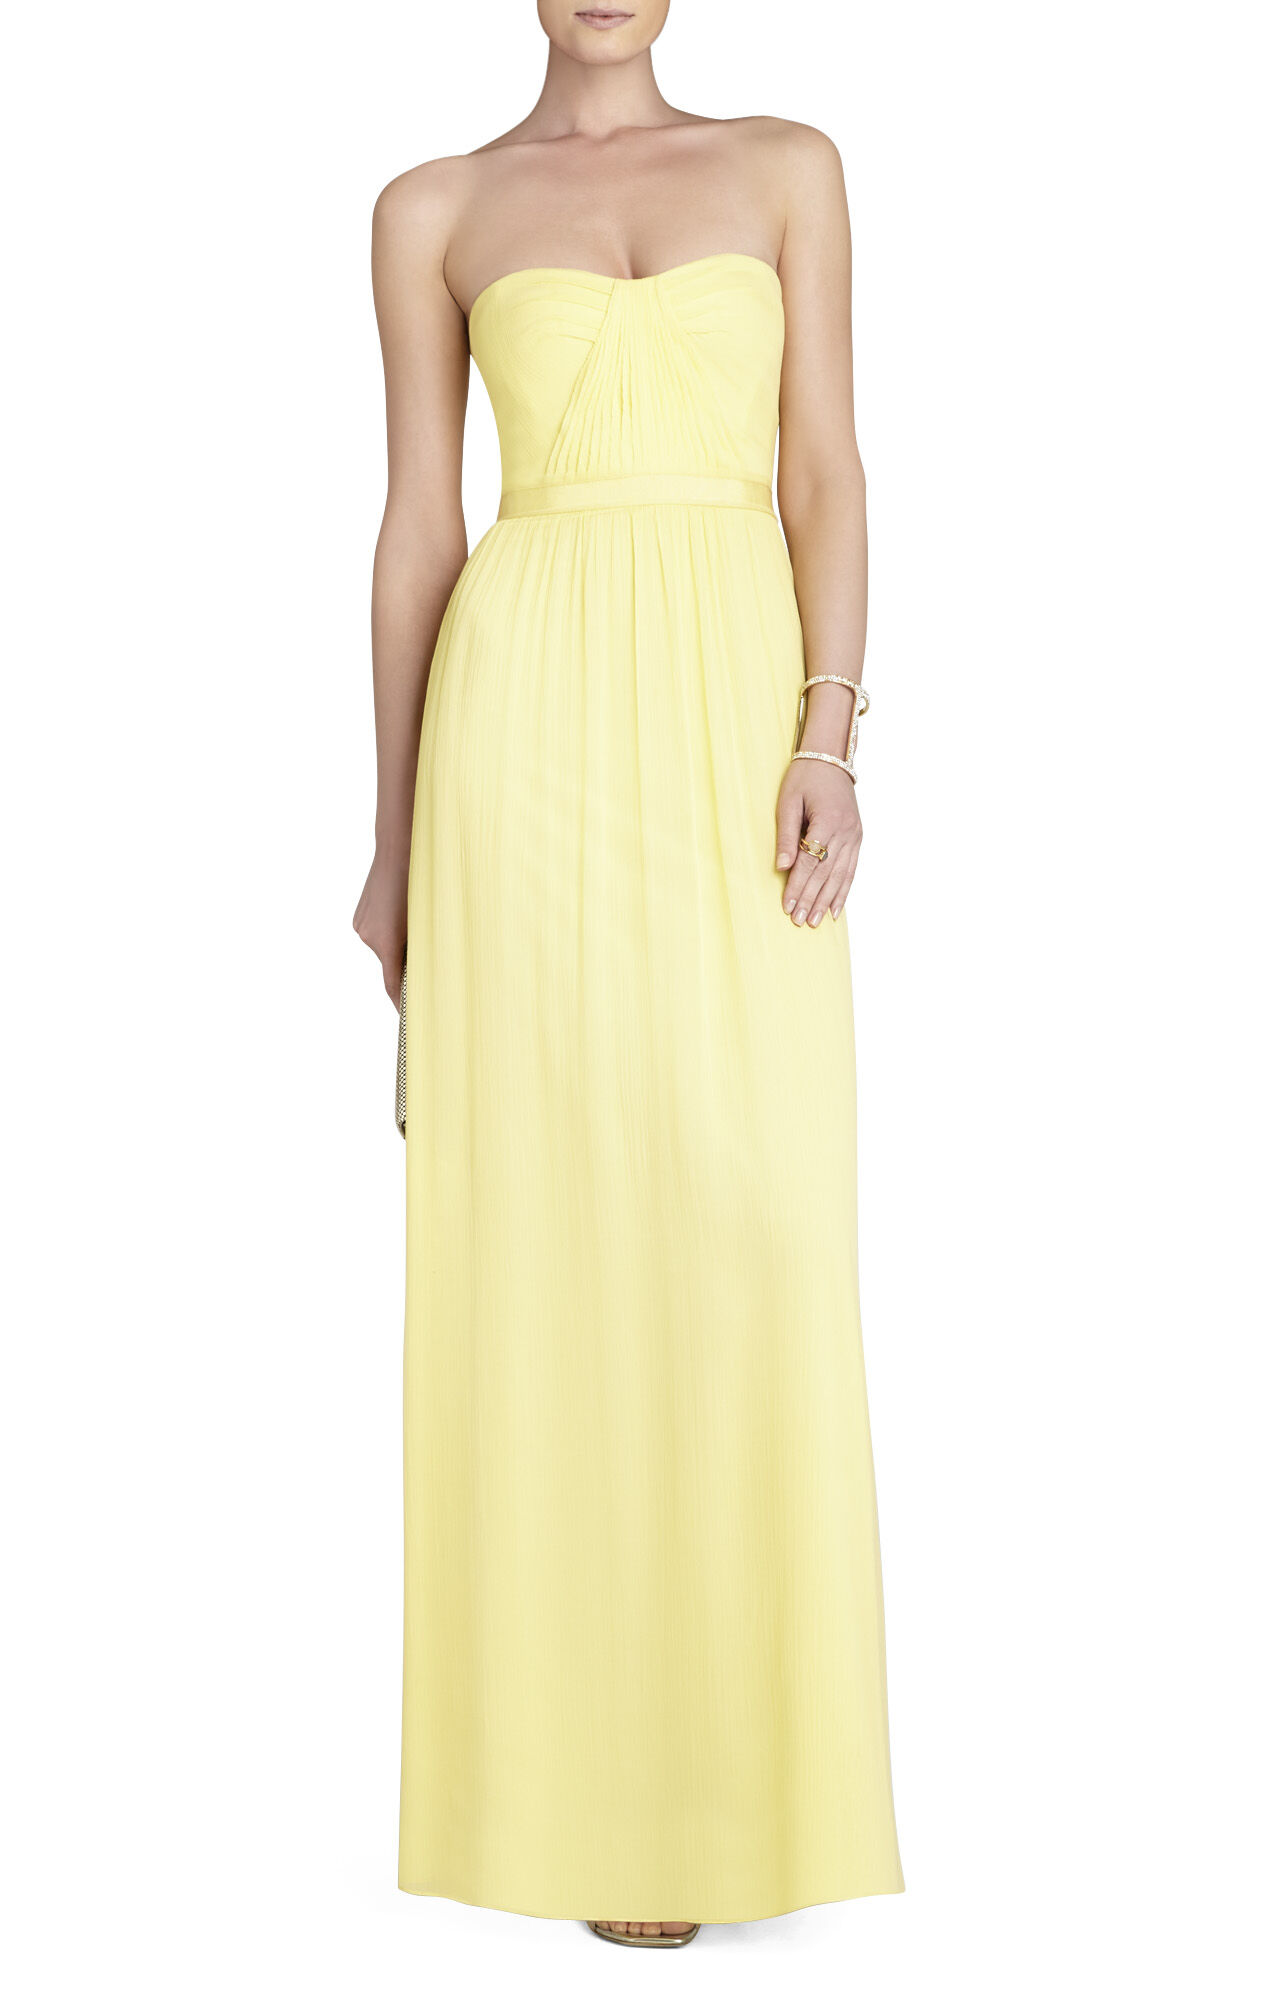 Amber Cascade Strapless Dress